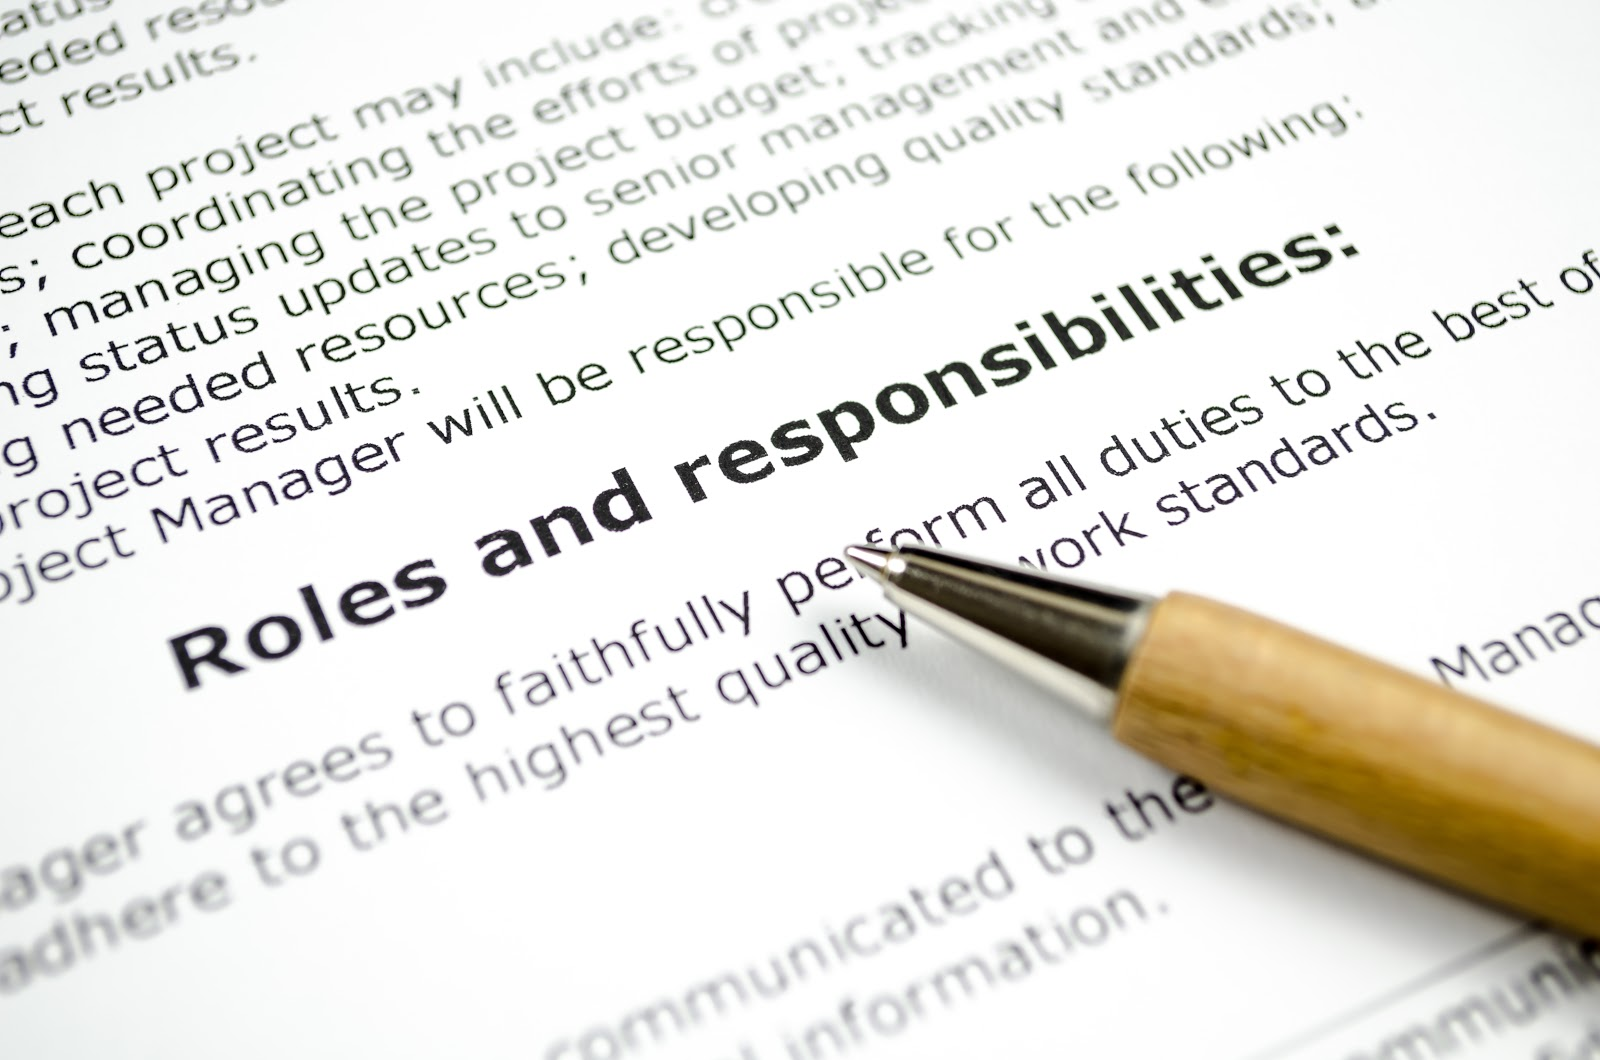 How to write job description for interns: Paper copy of roles and responsibilities